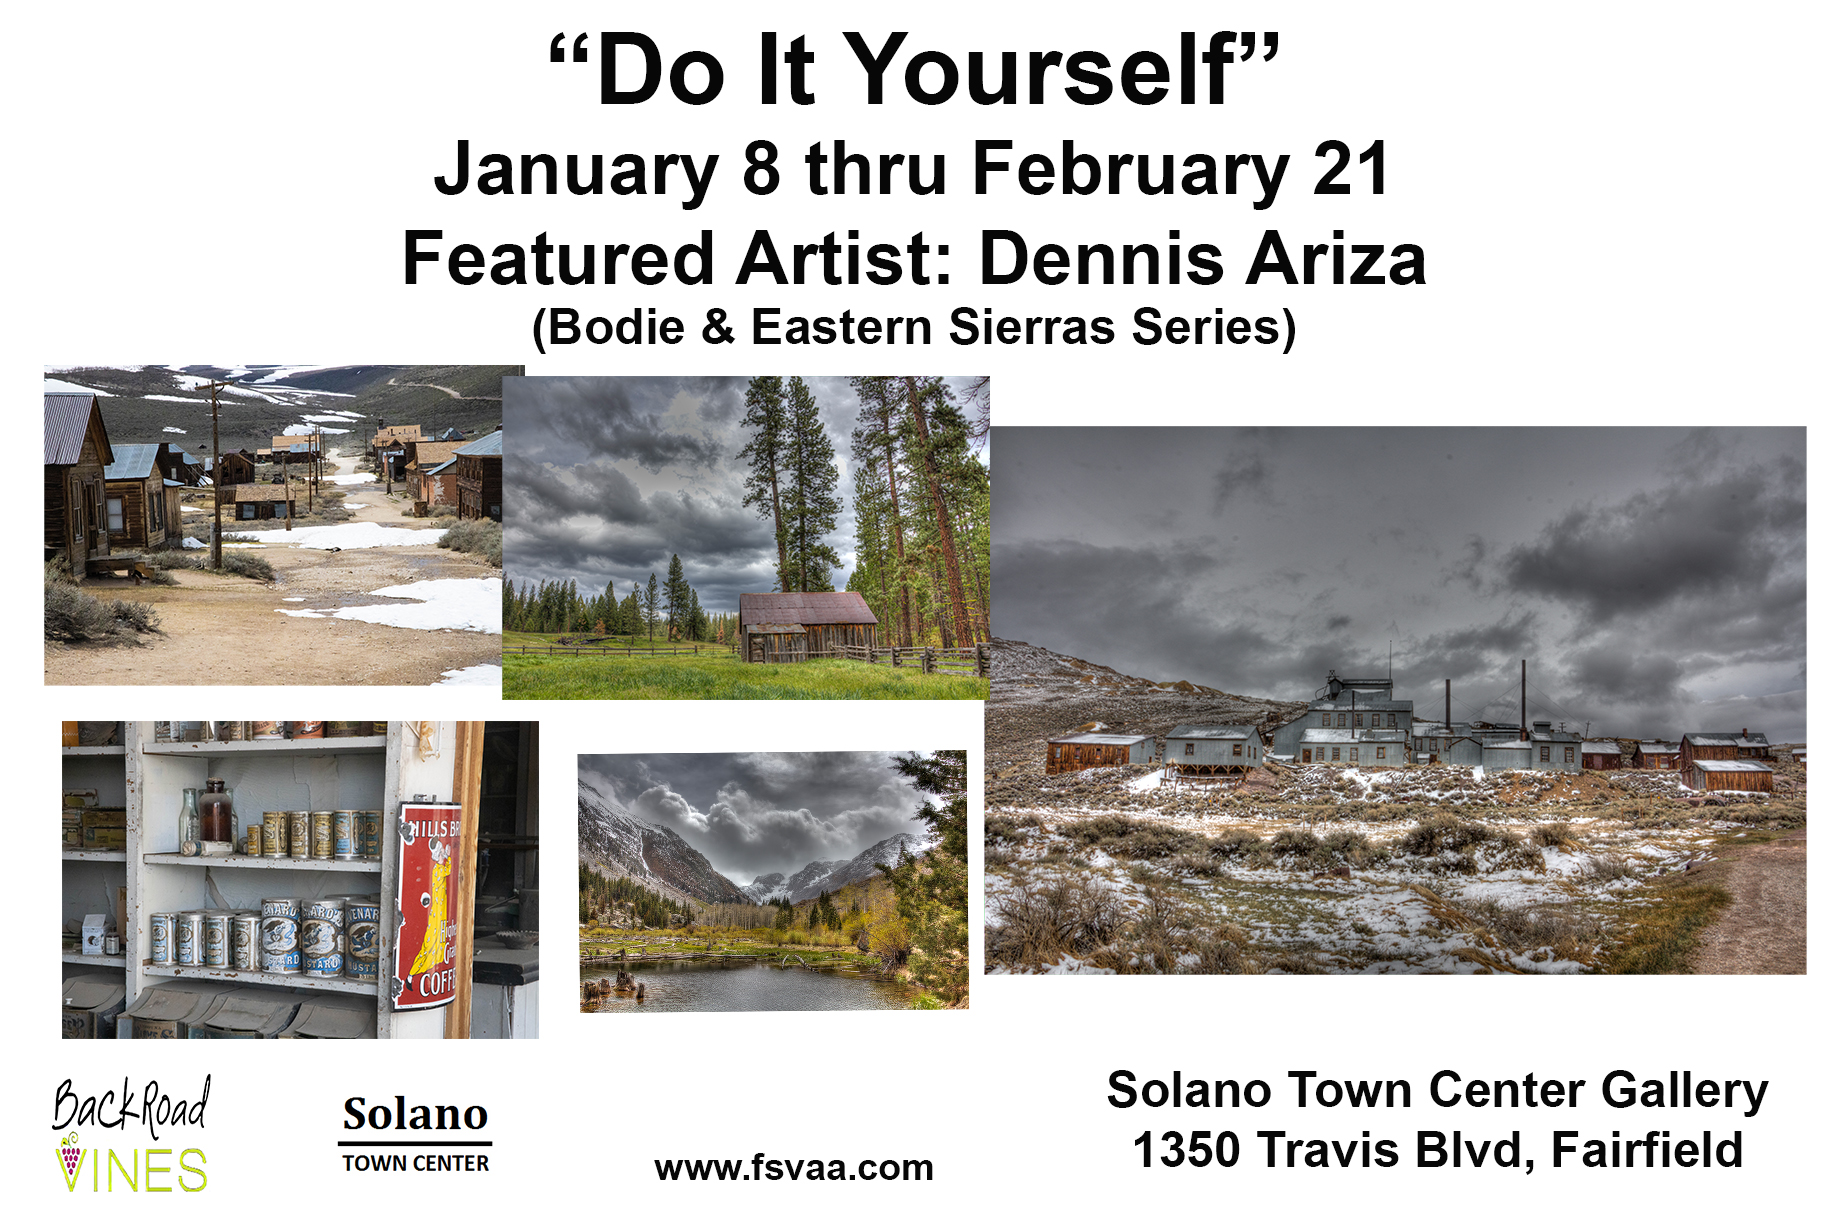 Dennis Ariza Do It Yourself Postcard